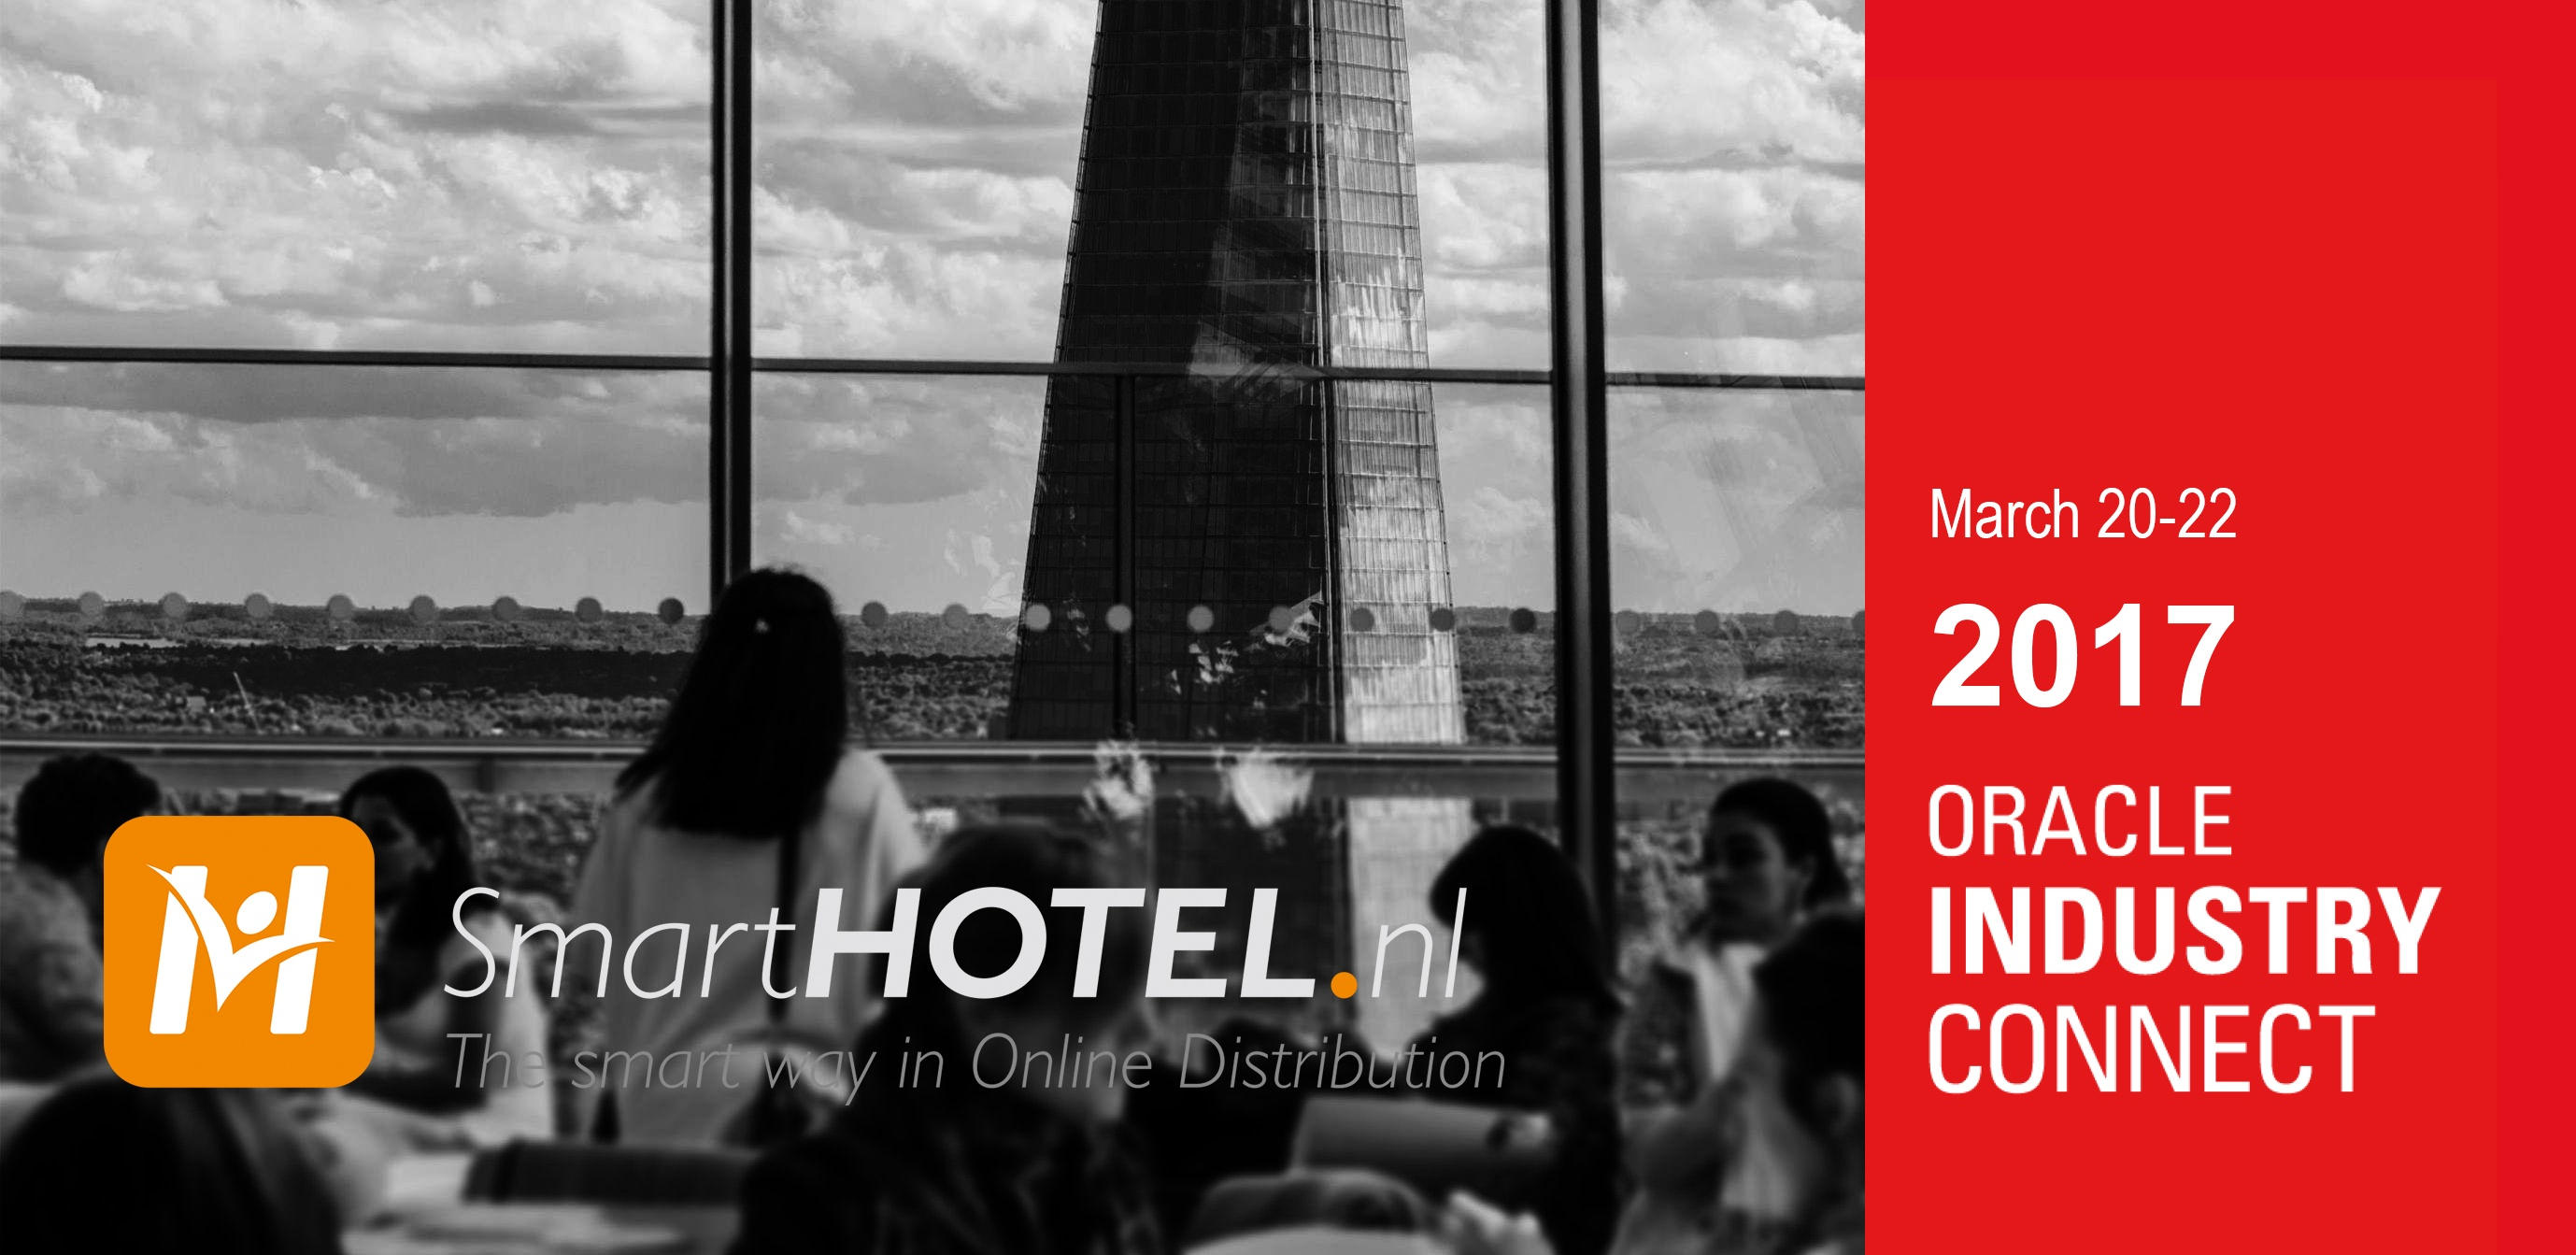 Oracle industry connect - SmartHOTEL Gold Partner.jpg